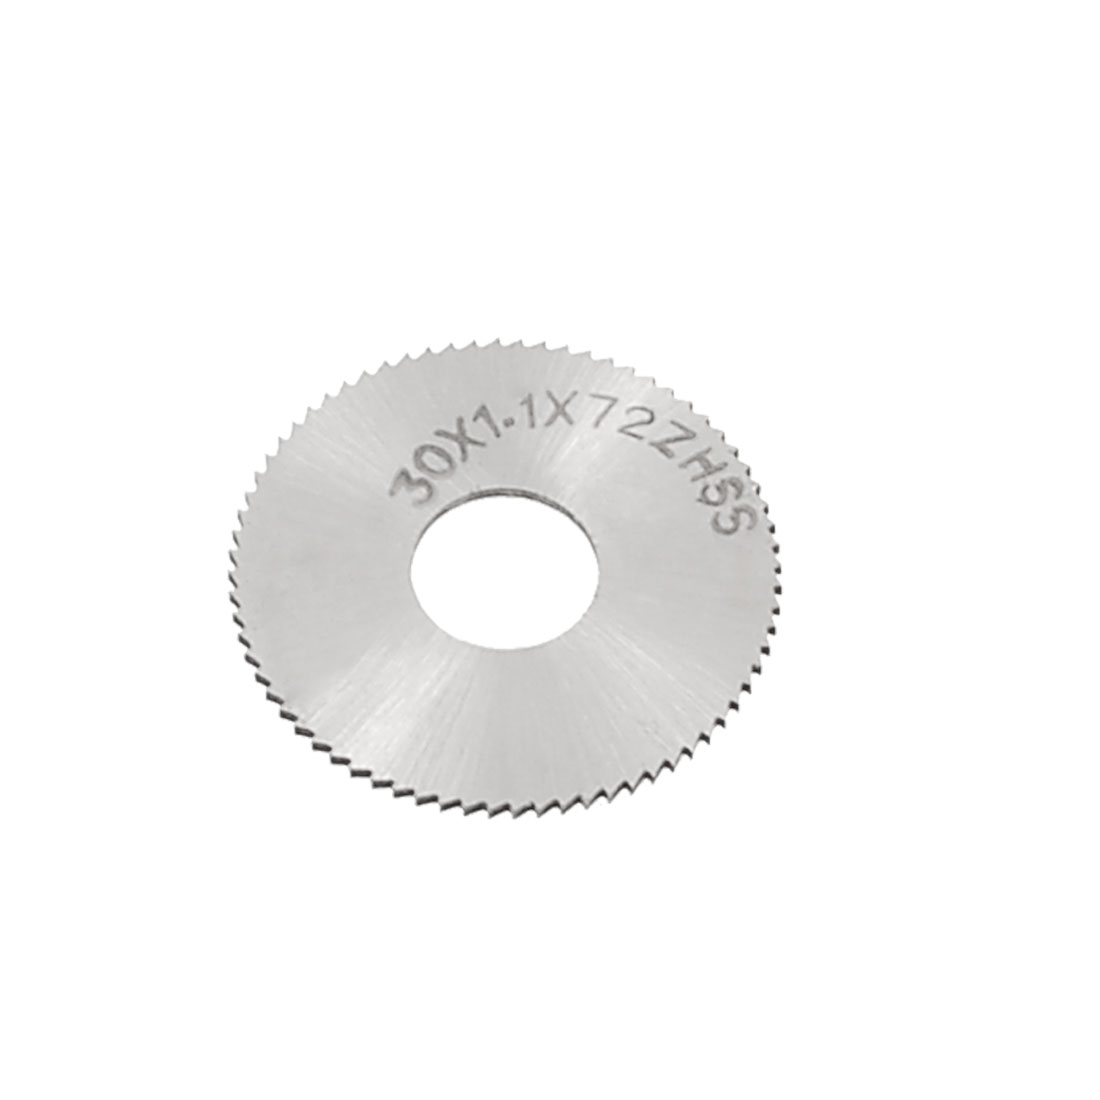 HSS Toothed 72T Slitting Saw Cutting Tool 30mm x 1.1mm x 10mm